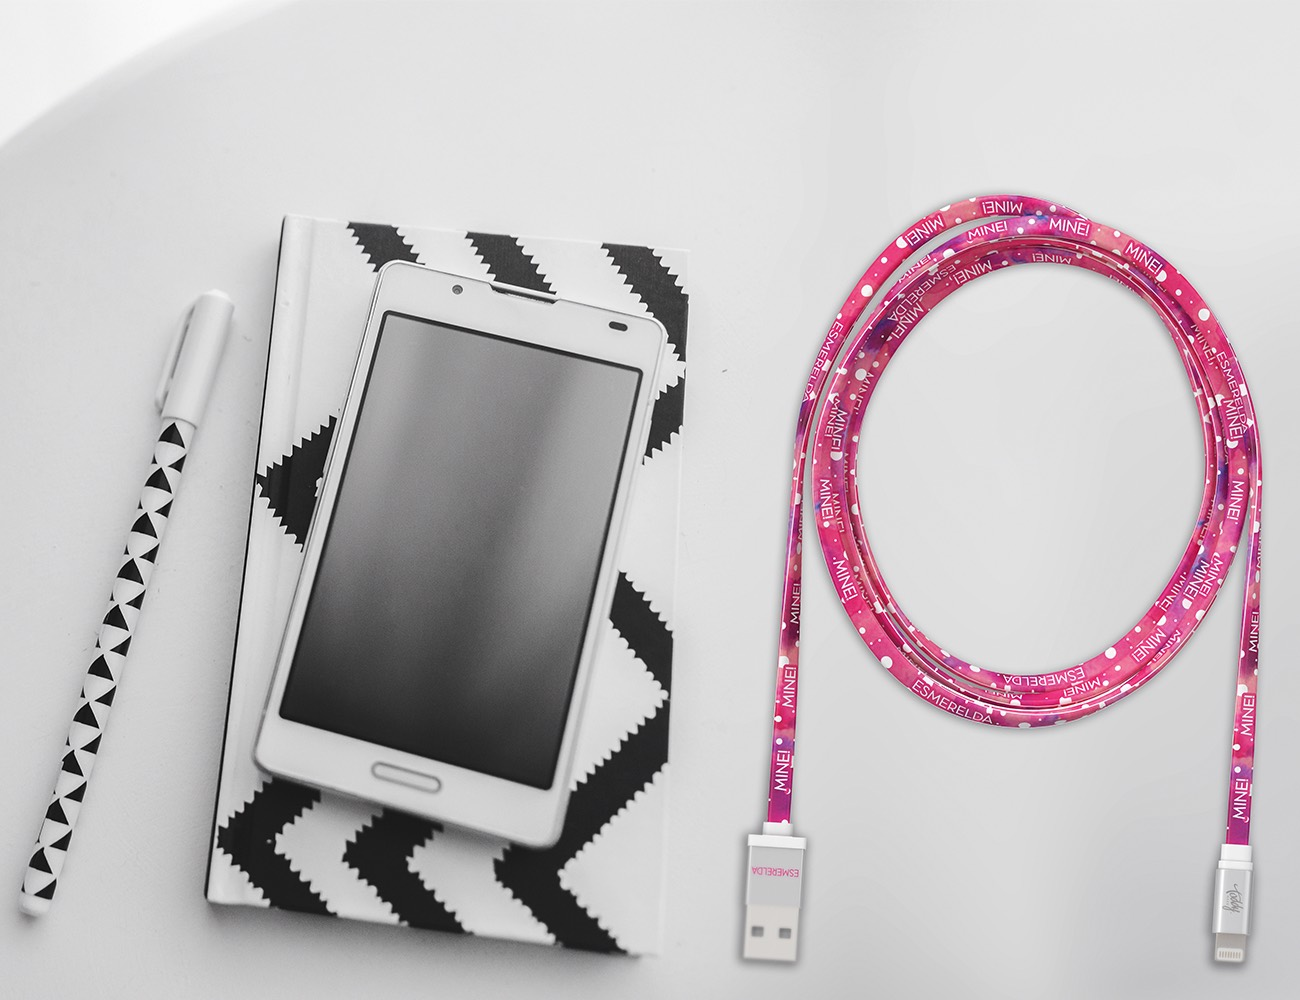 Toddy Cable – Your Personalized Charge and Sync Cable